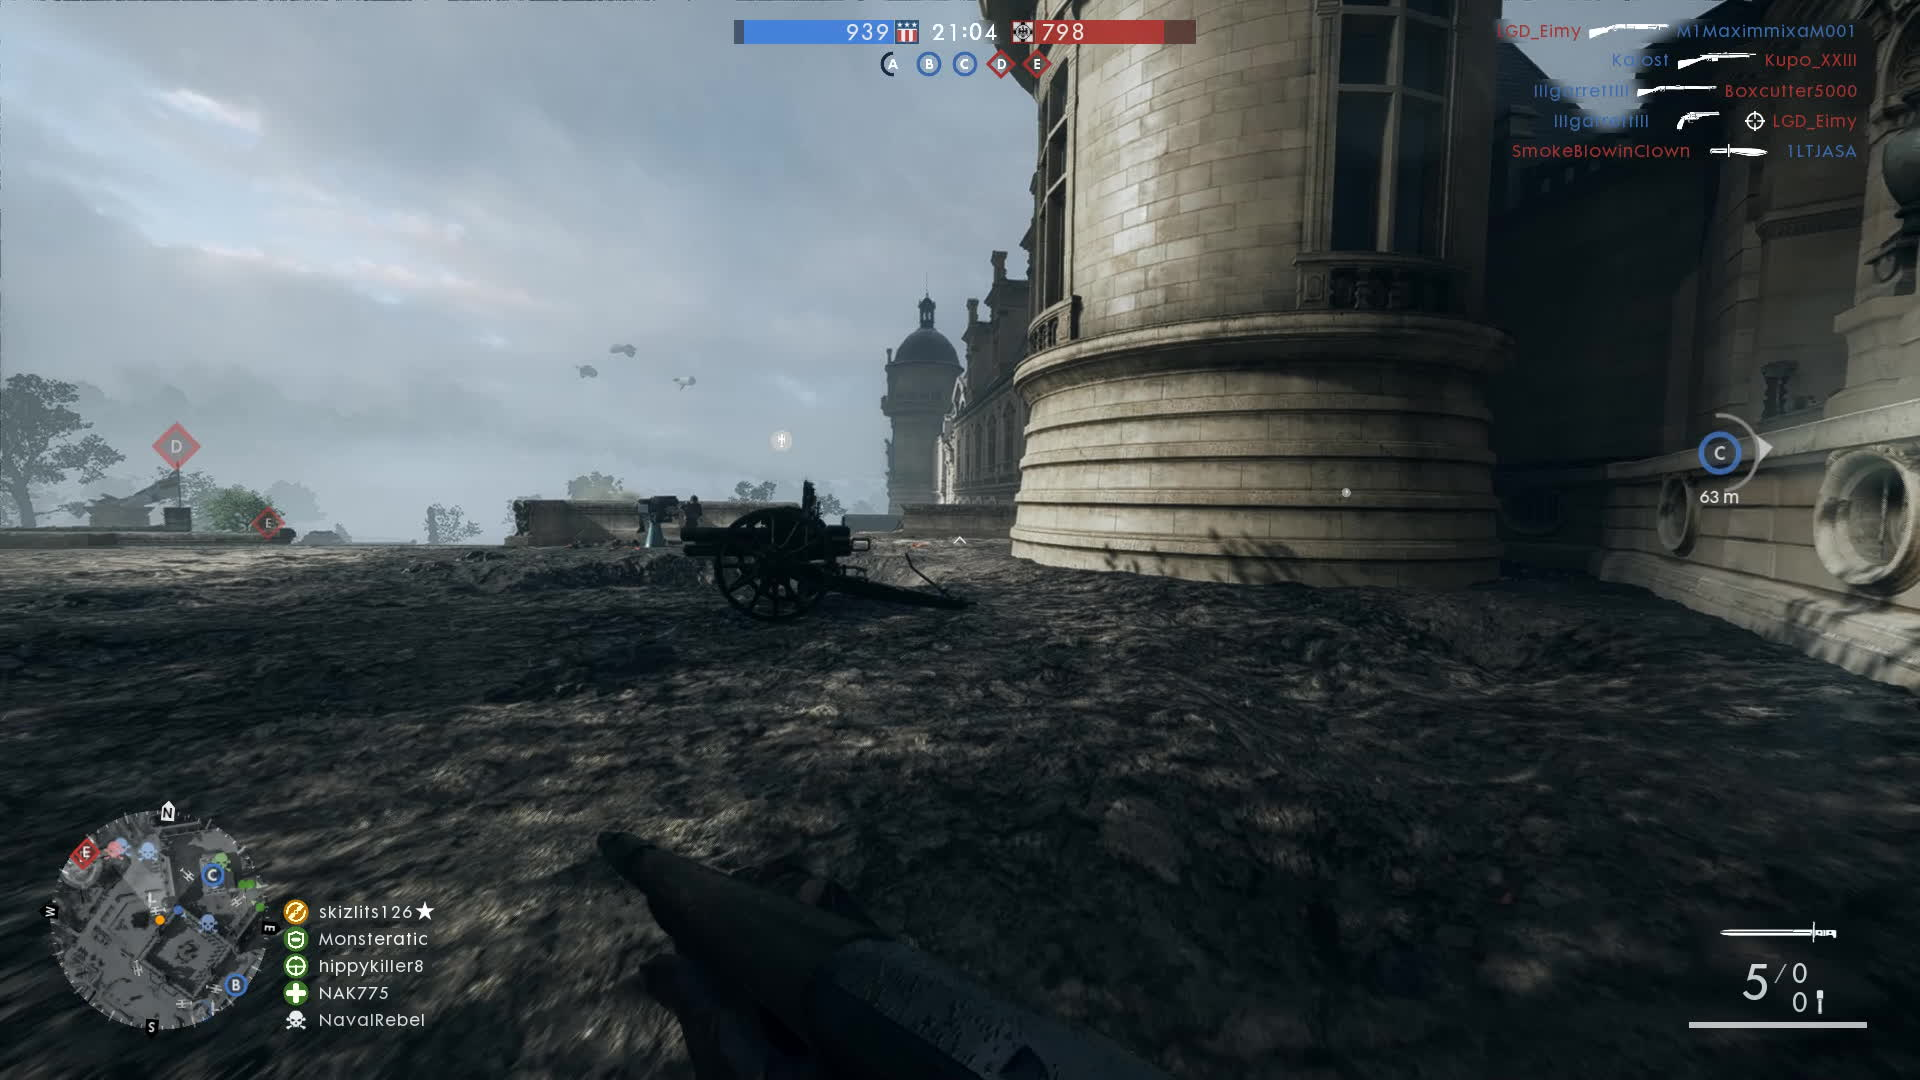 battlefield 1, Is this MW2? GIFs